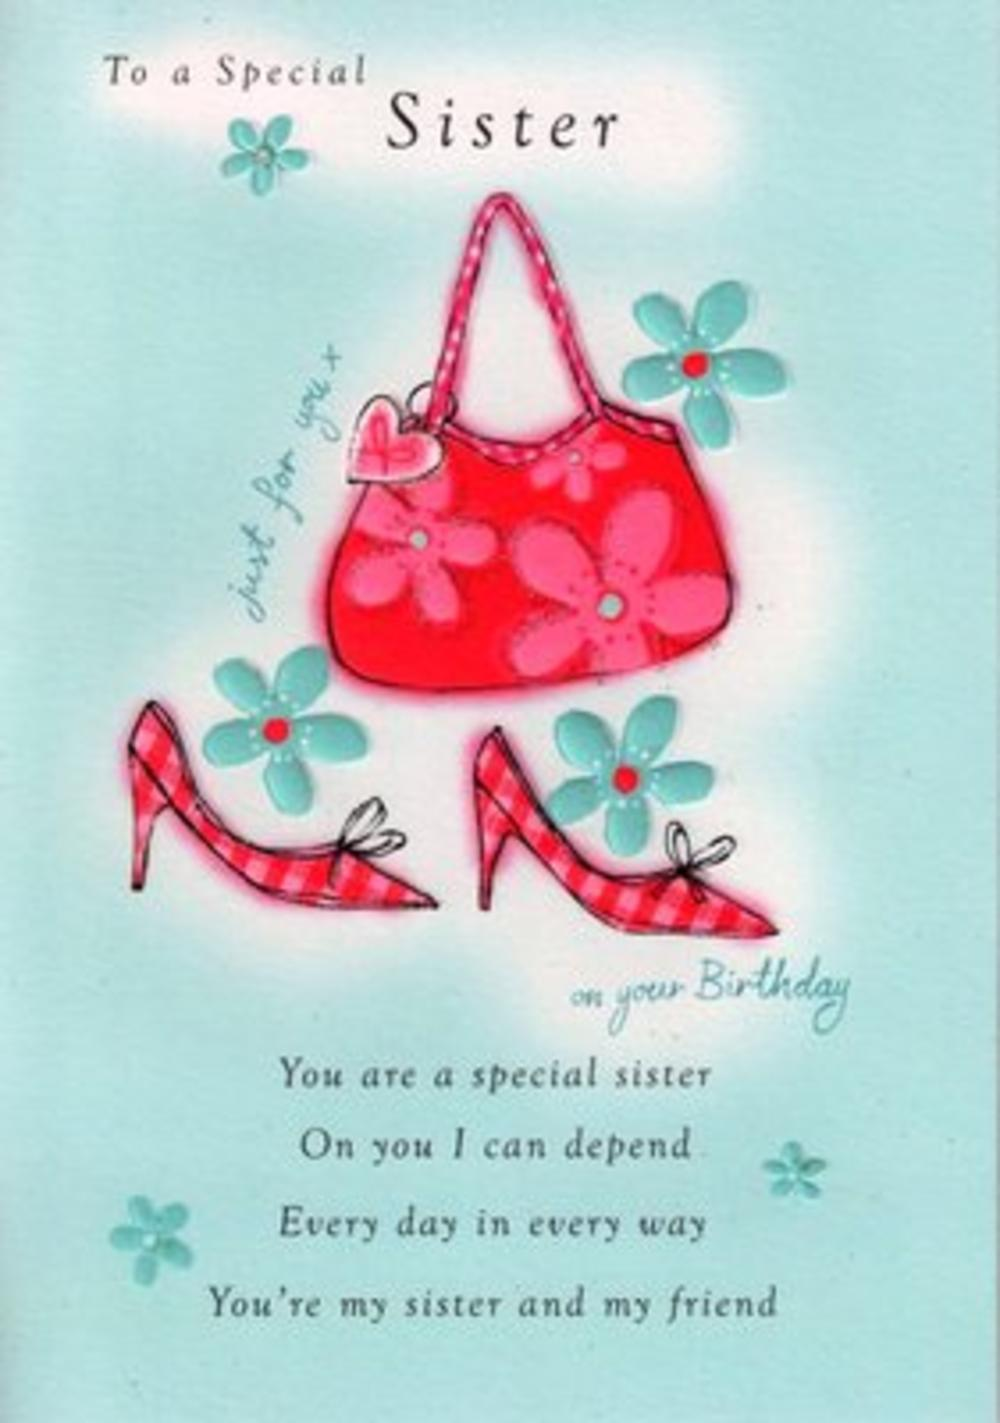 Sister Birthday Poetry In Motion Card Cards Love Kates Online